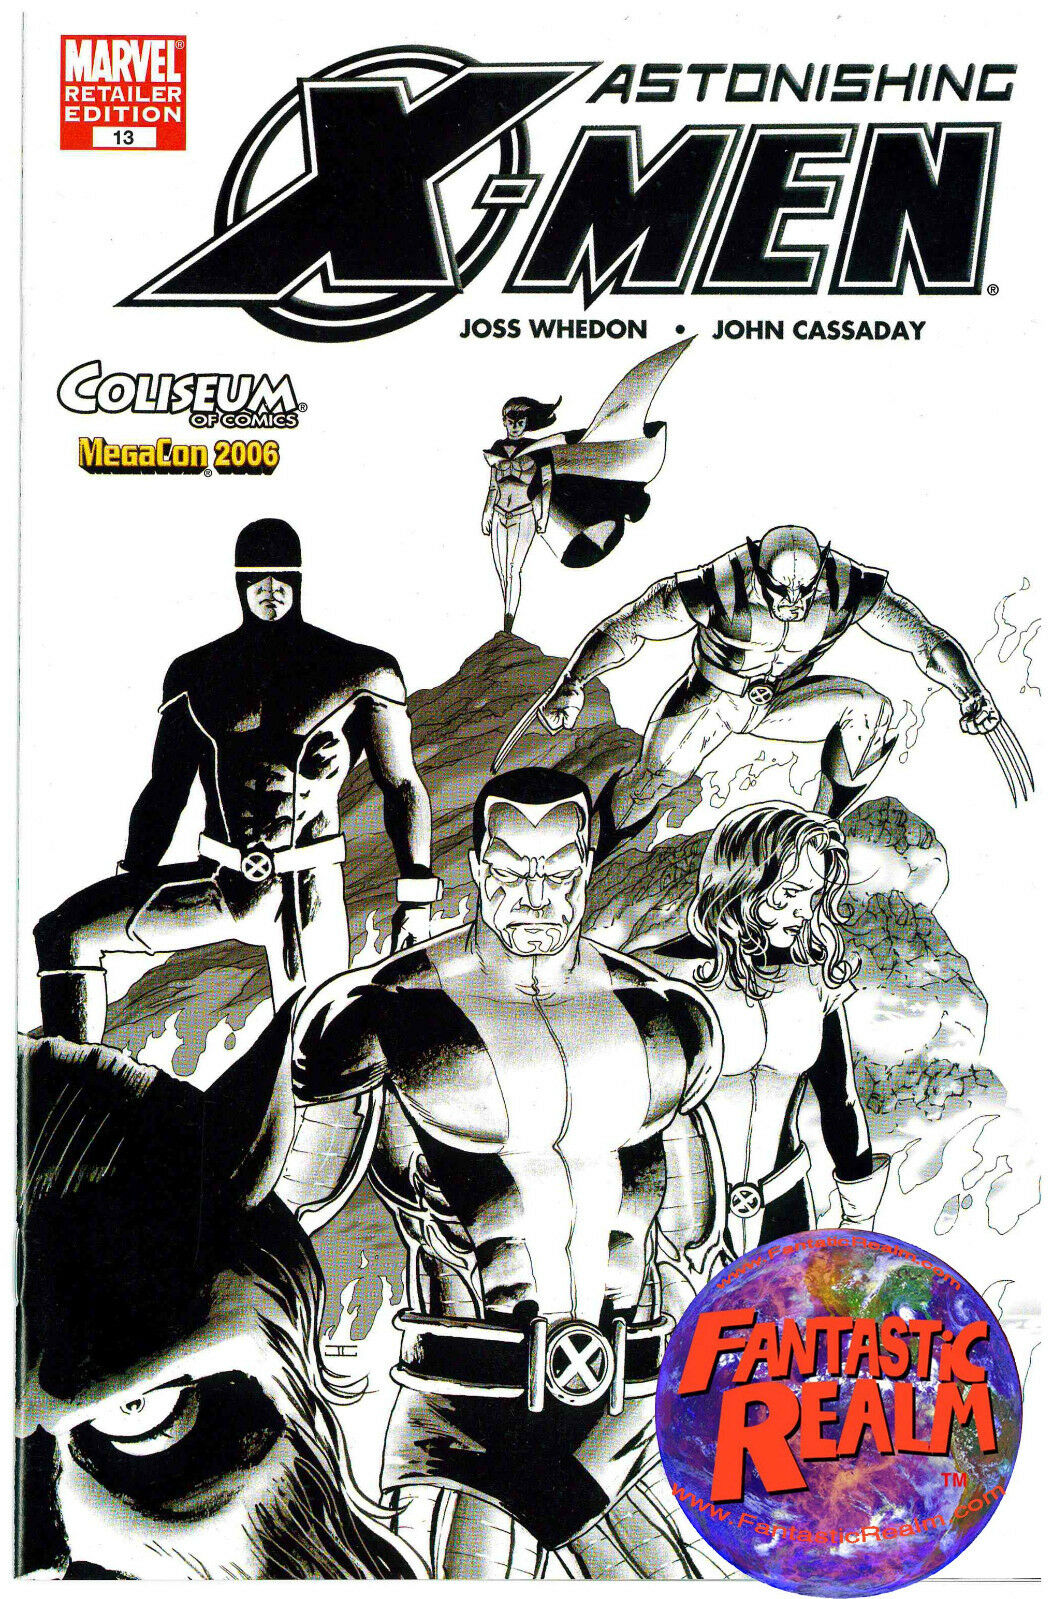 MARVEL ASTONISHING X-MEN #13 MEGACON 2006 JOHN CASSADAY SKETCH VARIANT